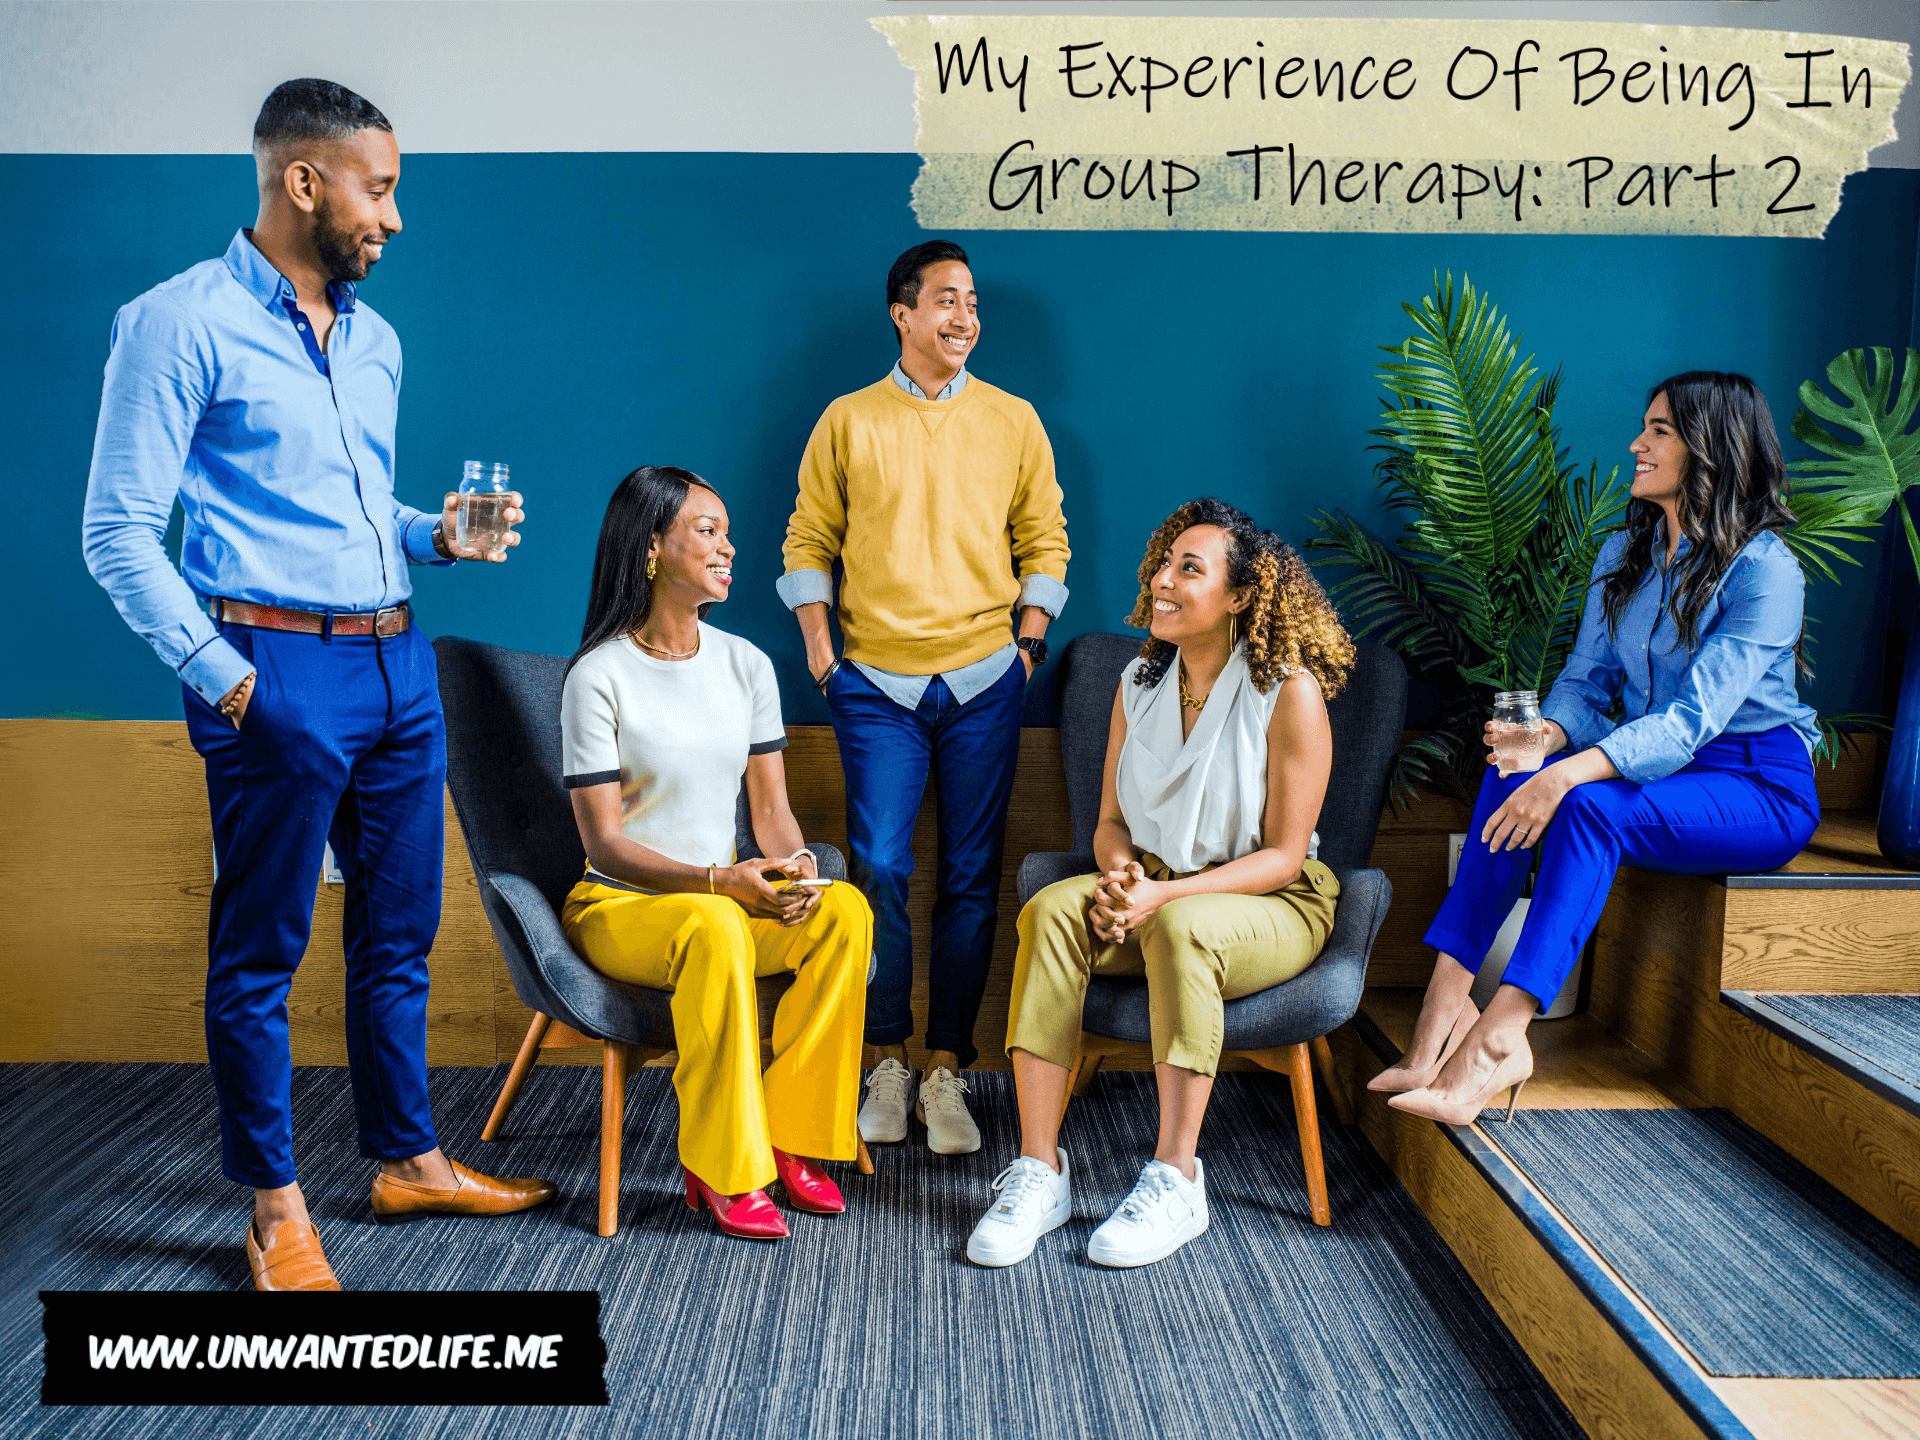 My Experience Of Being In Group Therapy: Part 2 | Mental Health and Wellness | Unwanted Life